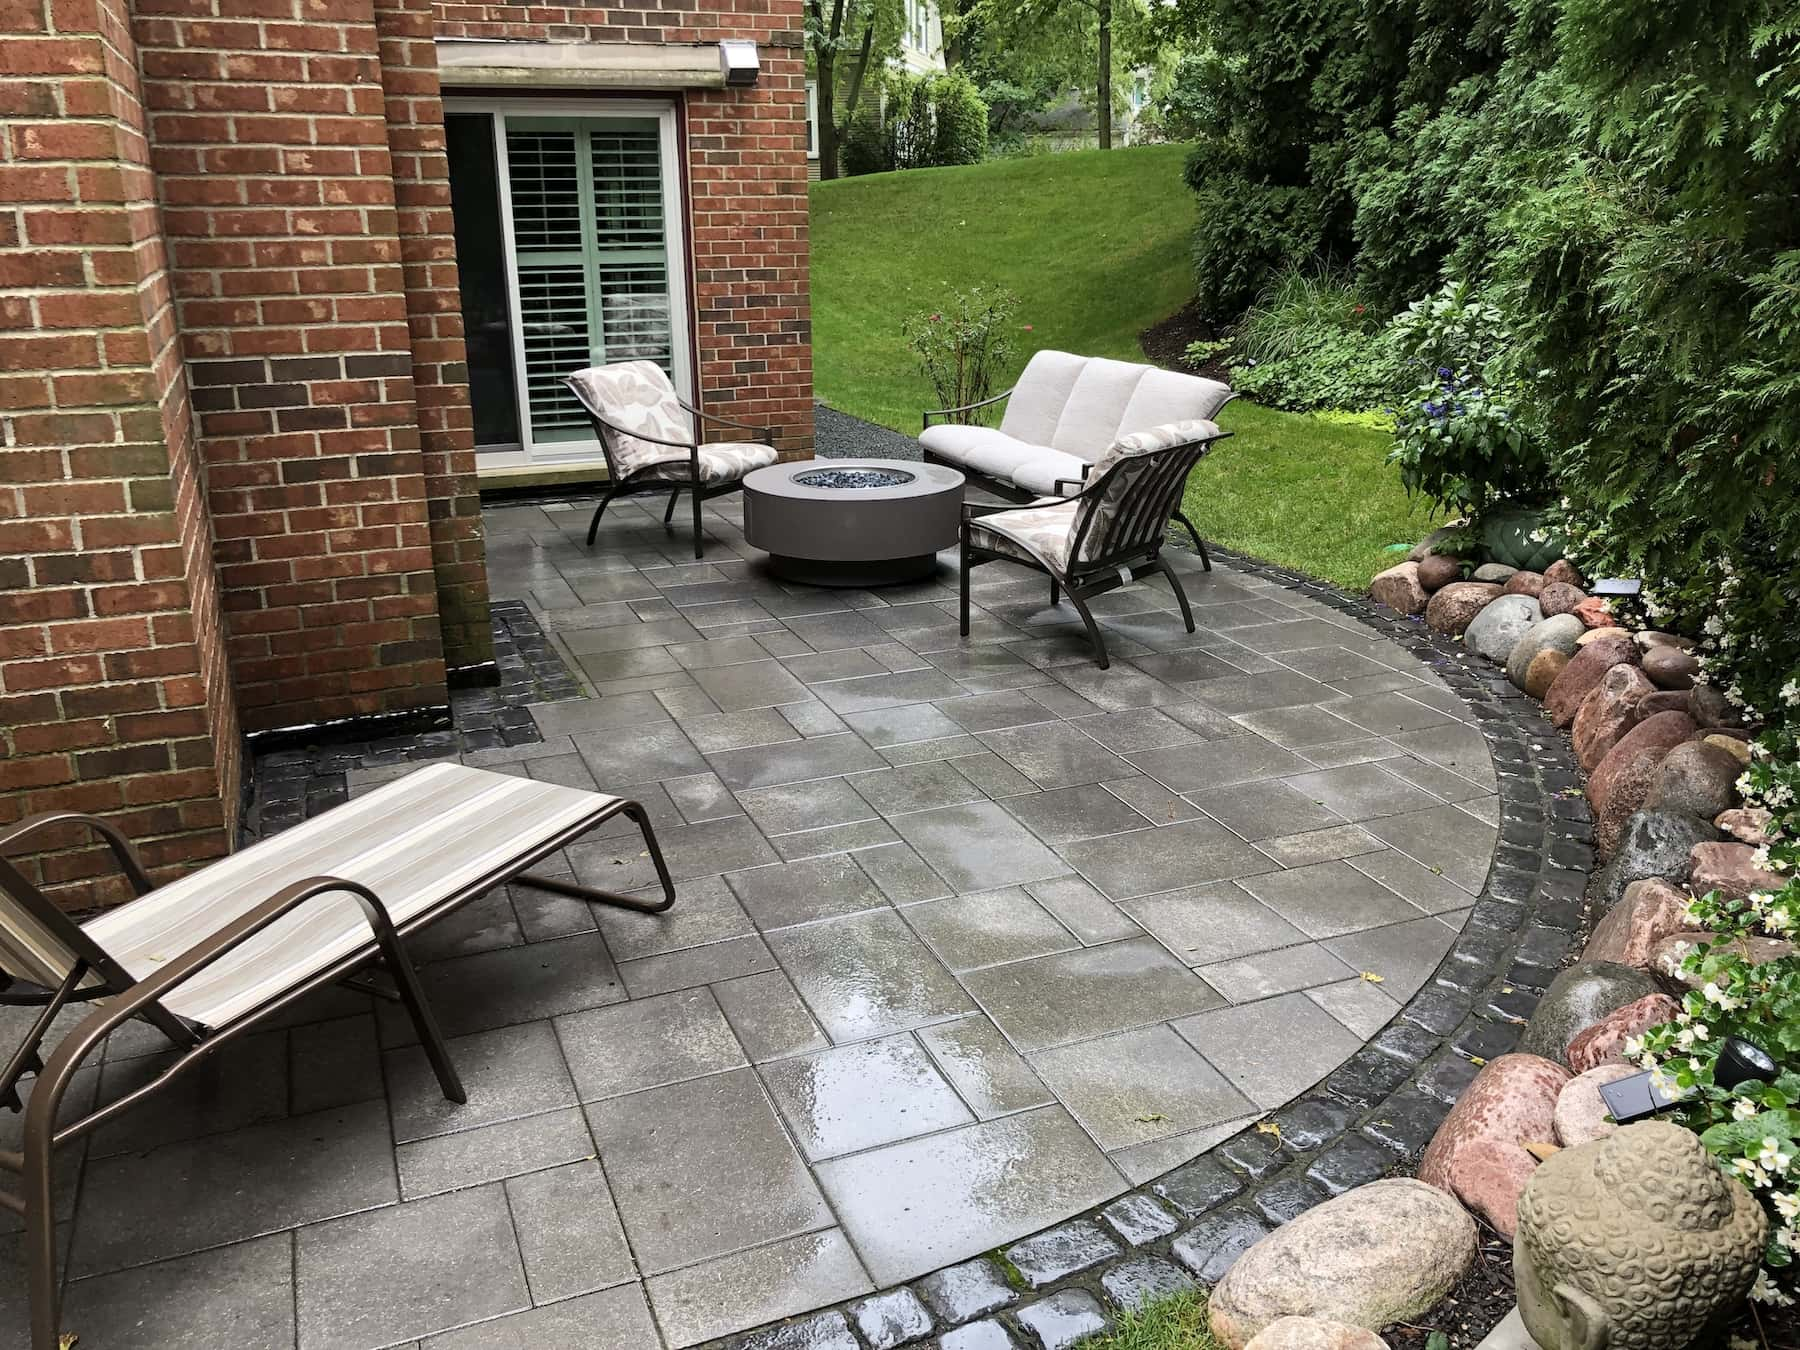 Townhouse Paver Patio & Fire Pit - Winnetka, IL ... on Pavers Patio With Fire Pit id=20718